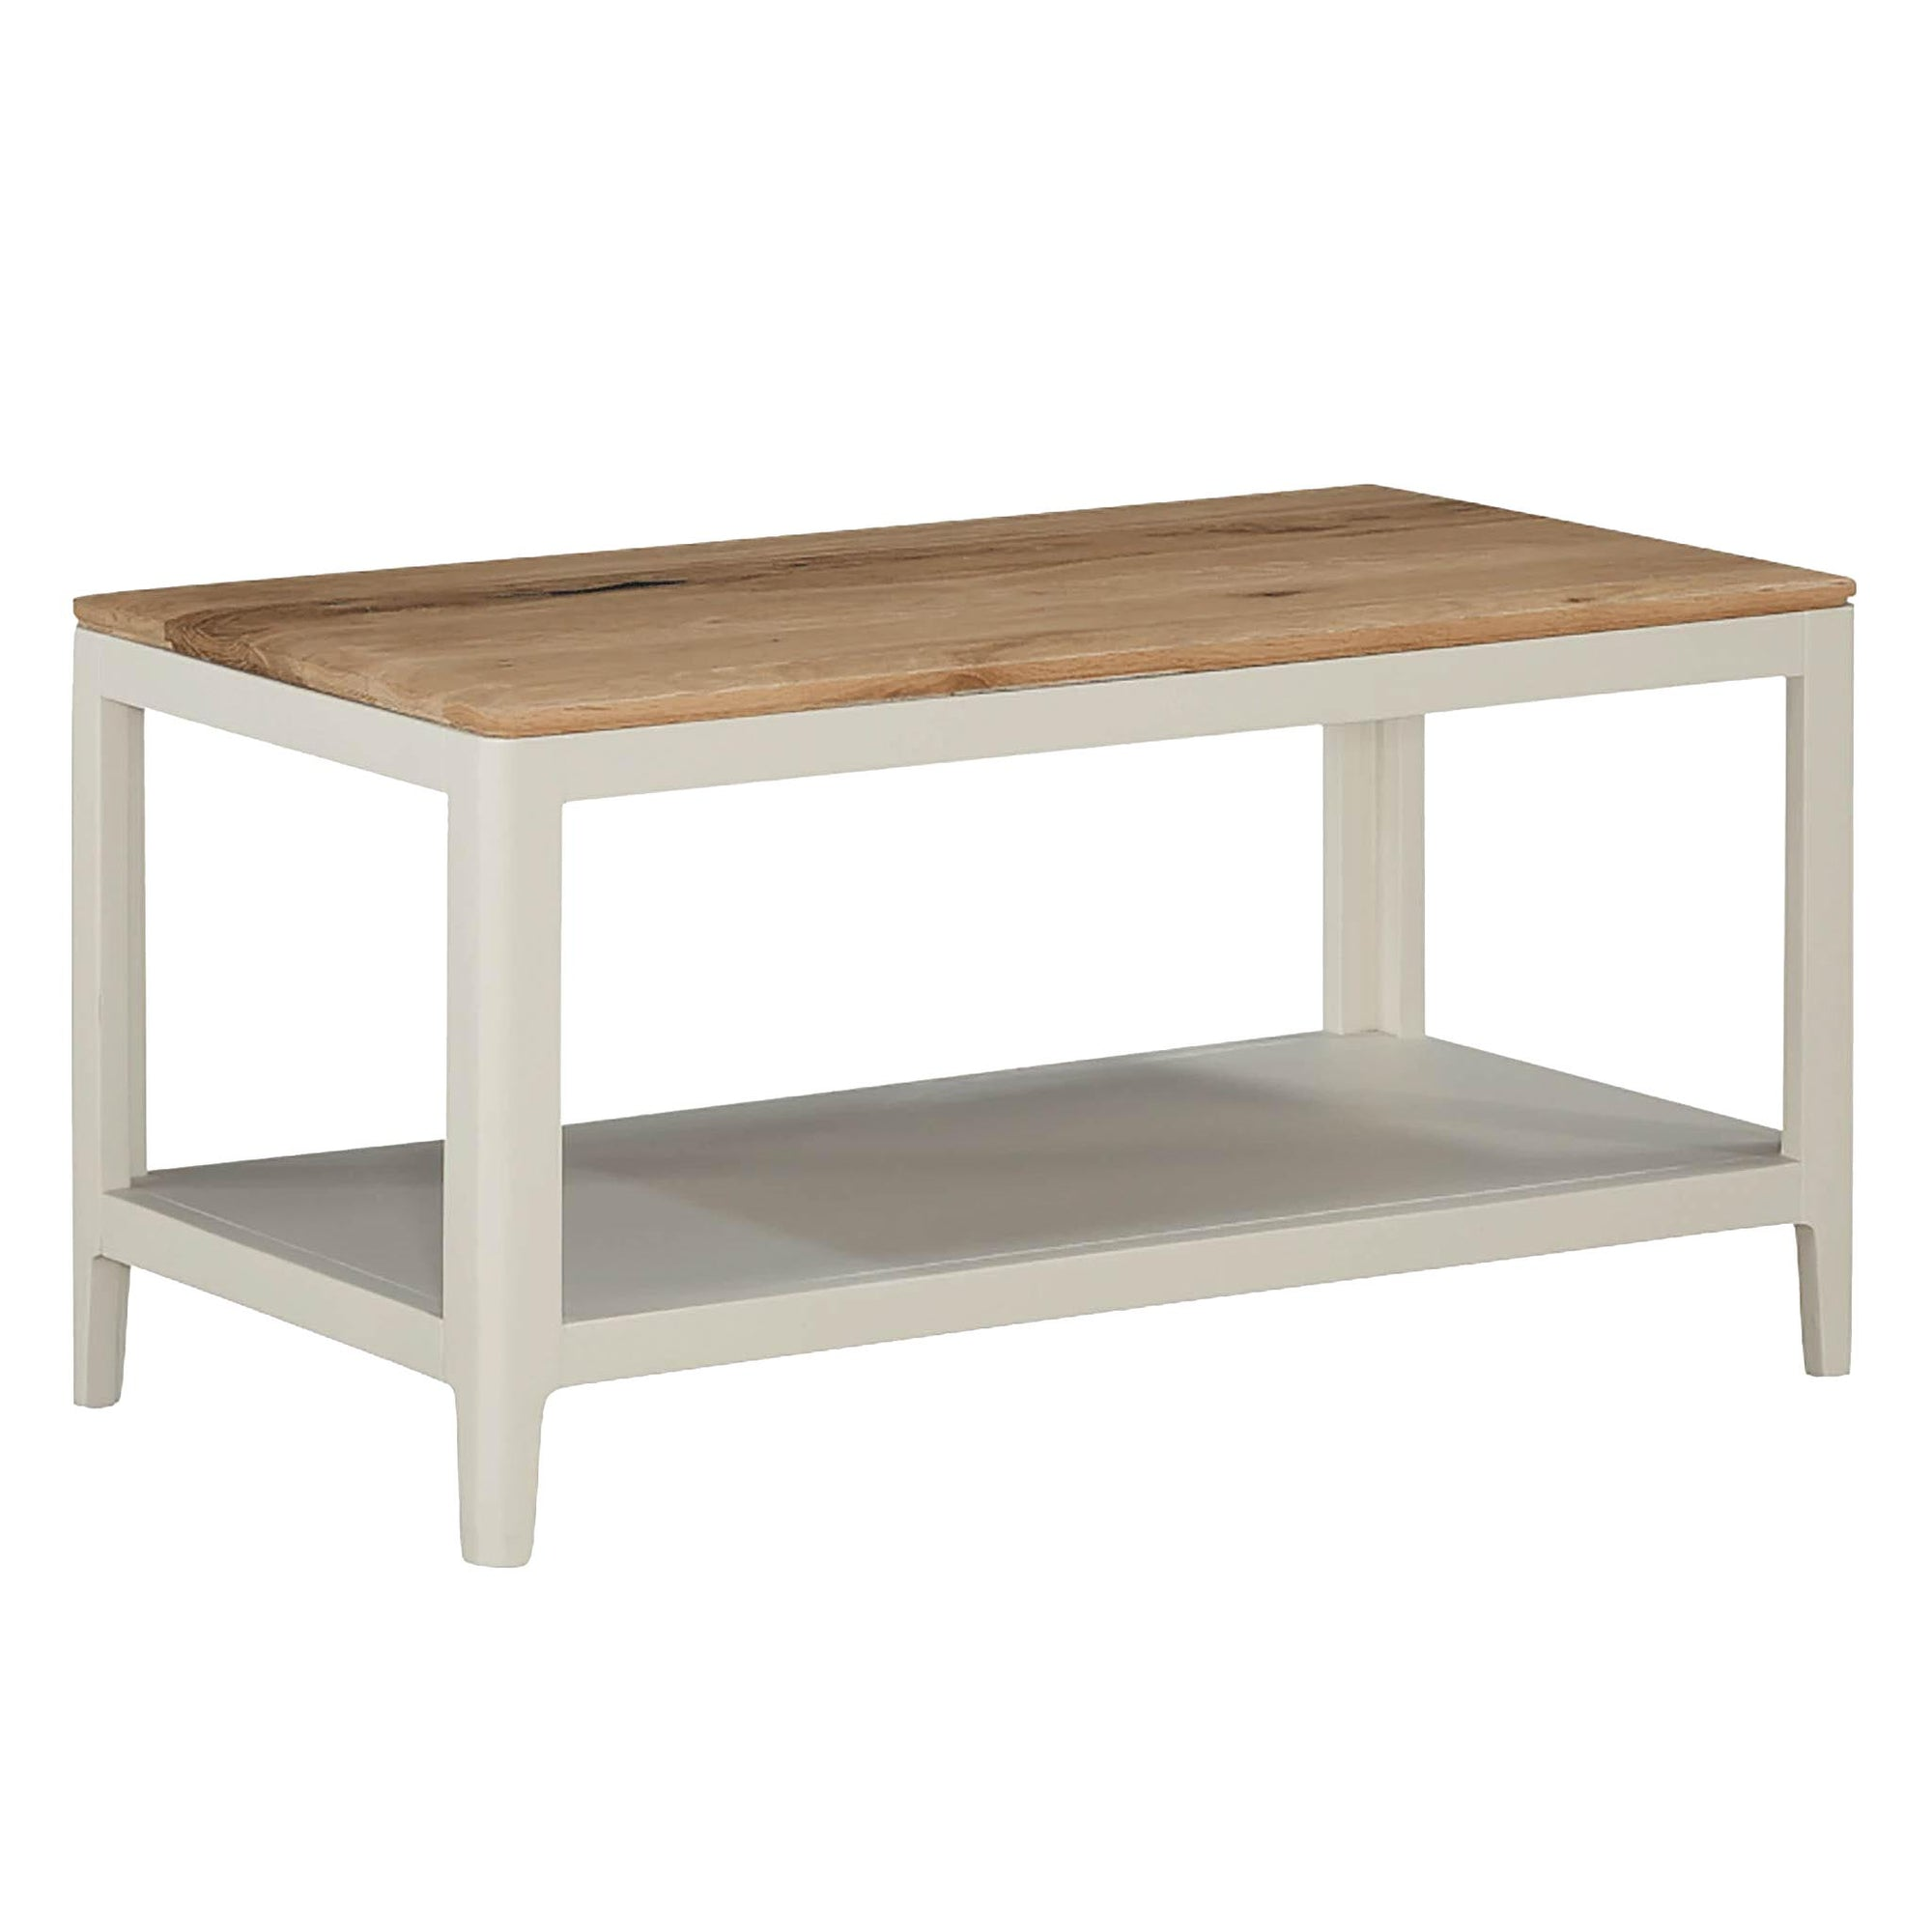 Dunmore Painted Coffee Table by Roseland Furniture